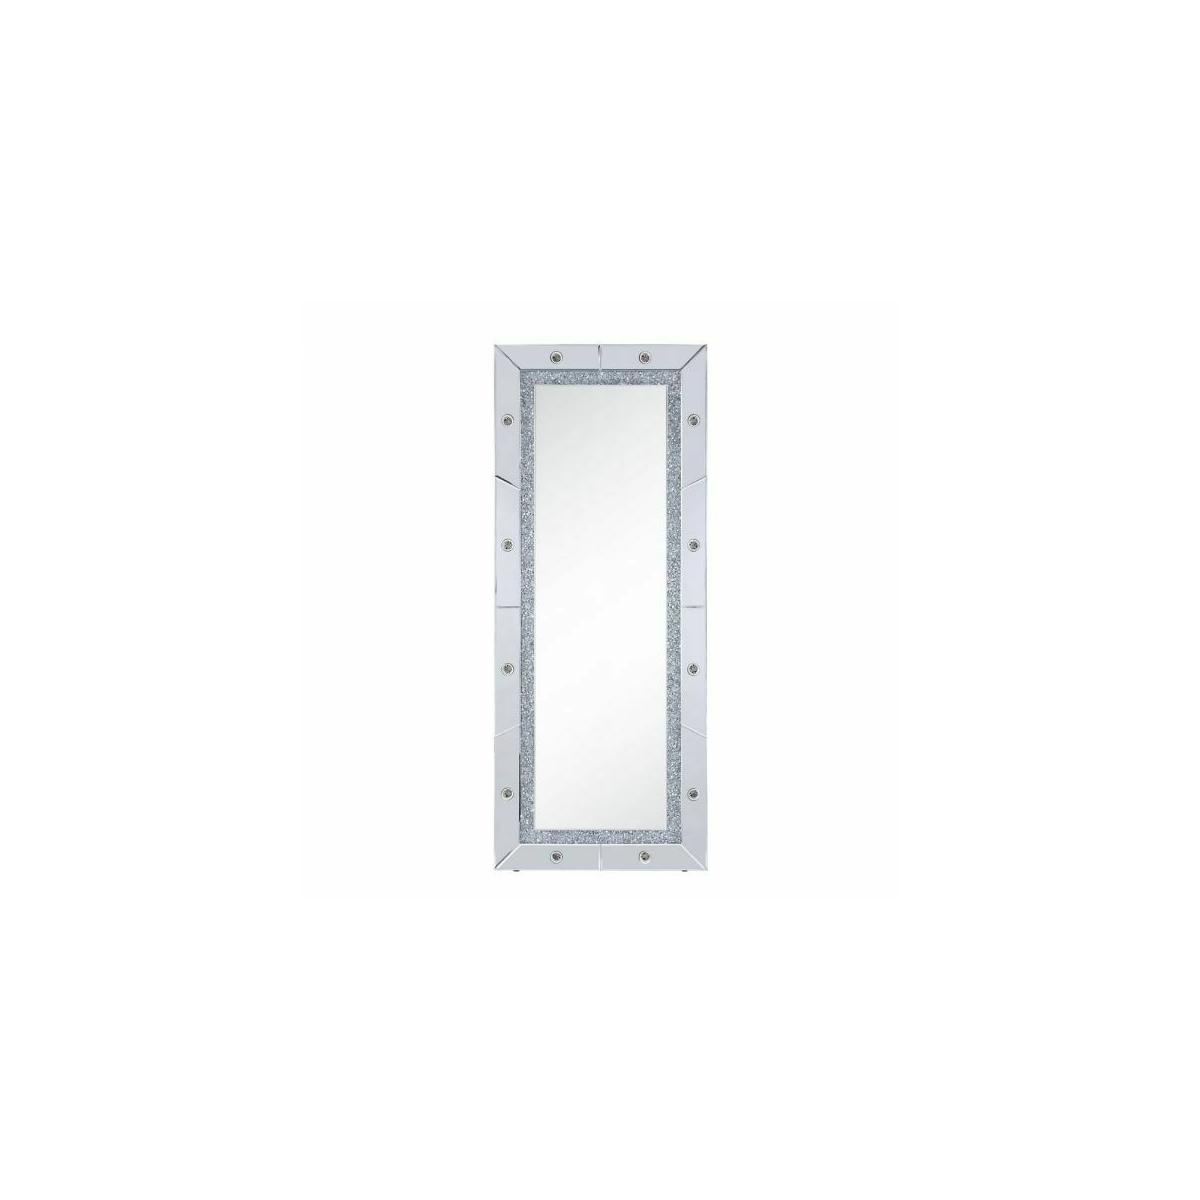 ACME Noralie Wall Decor - 97754 - Glam - LED Light, Mirror, Glass, MDF, Faux Diamonds (Acrylic) - Mirrored and Faux Diamonds